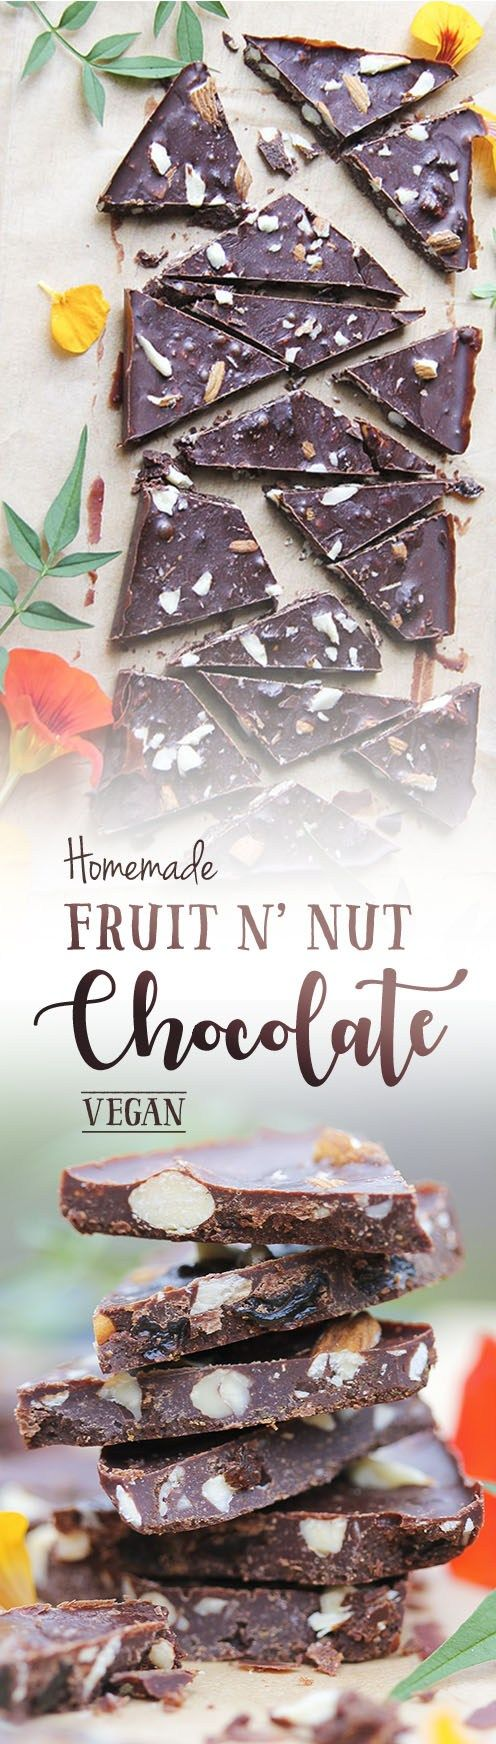 Homemade vegan fruit n' nut chocolate recipe by Trinity with cacao and lucuma